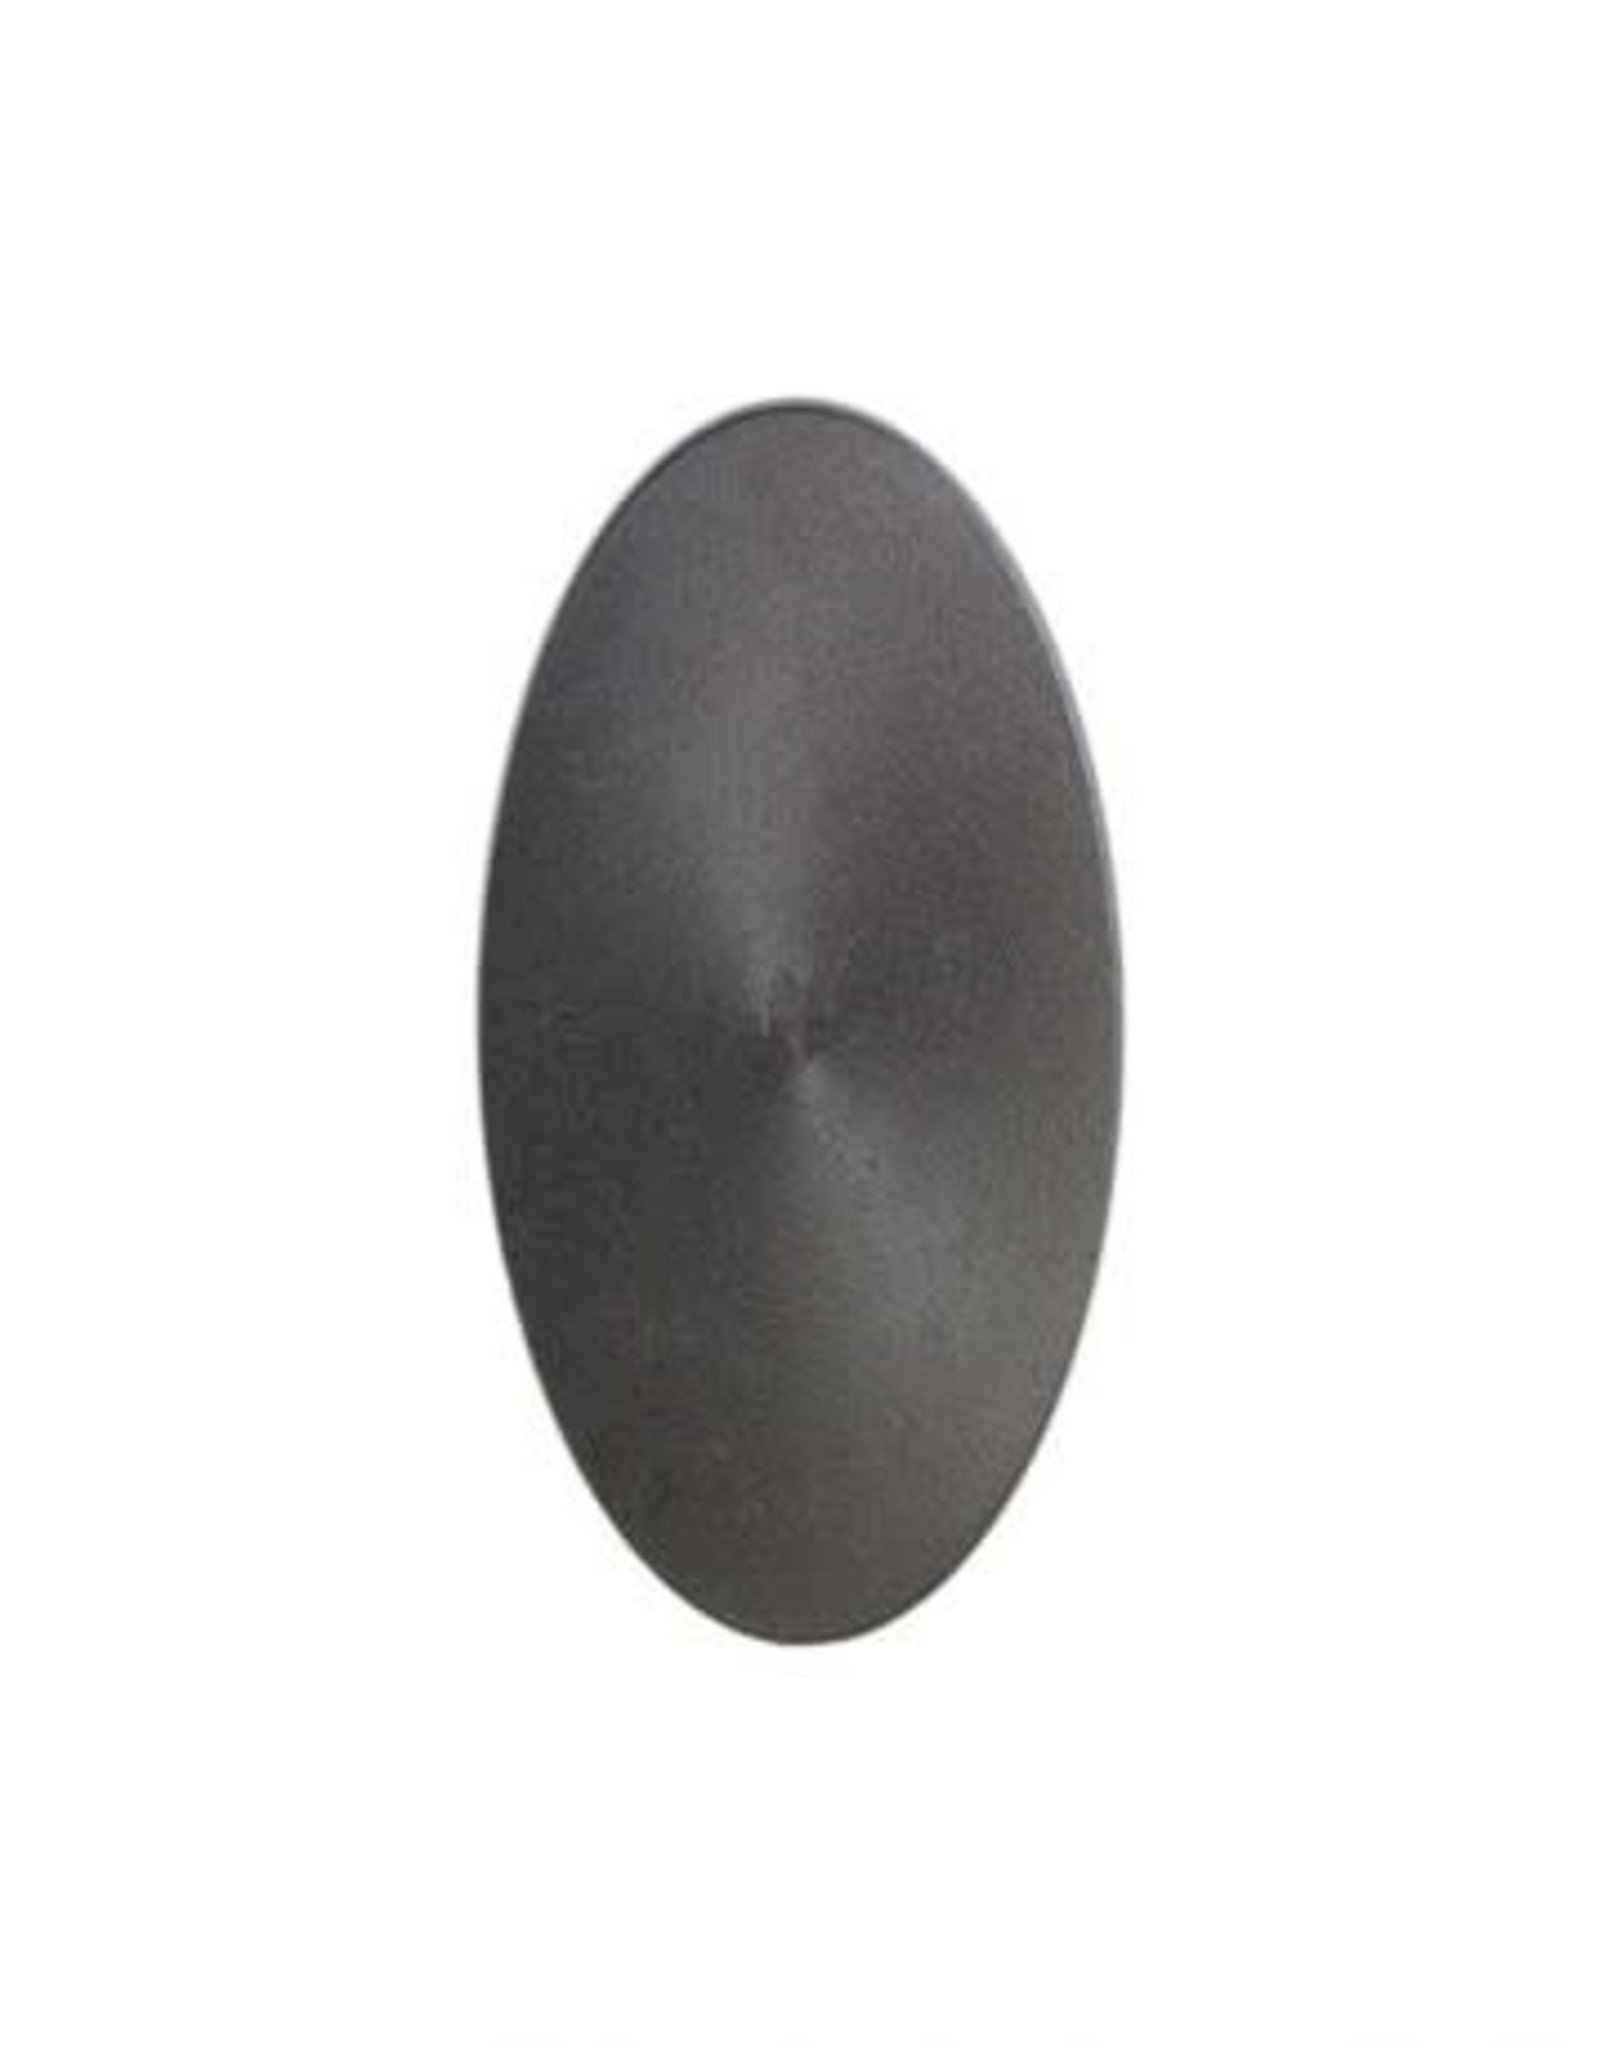 Games Workshop 60x35mm Oval Bases